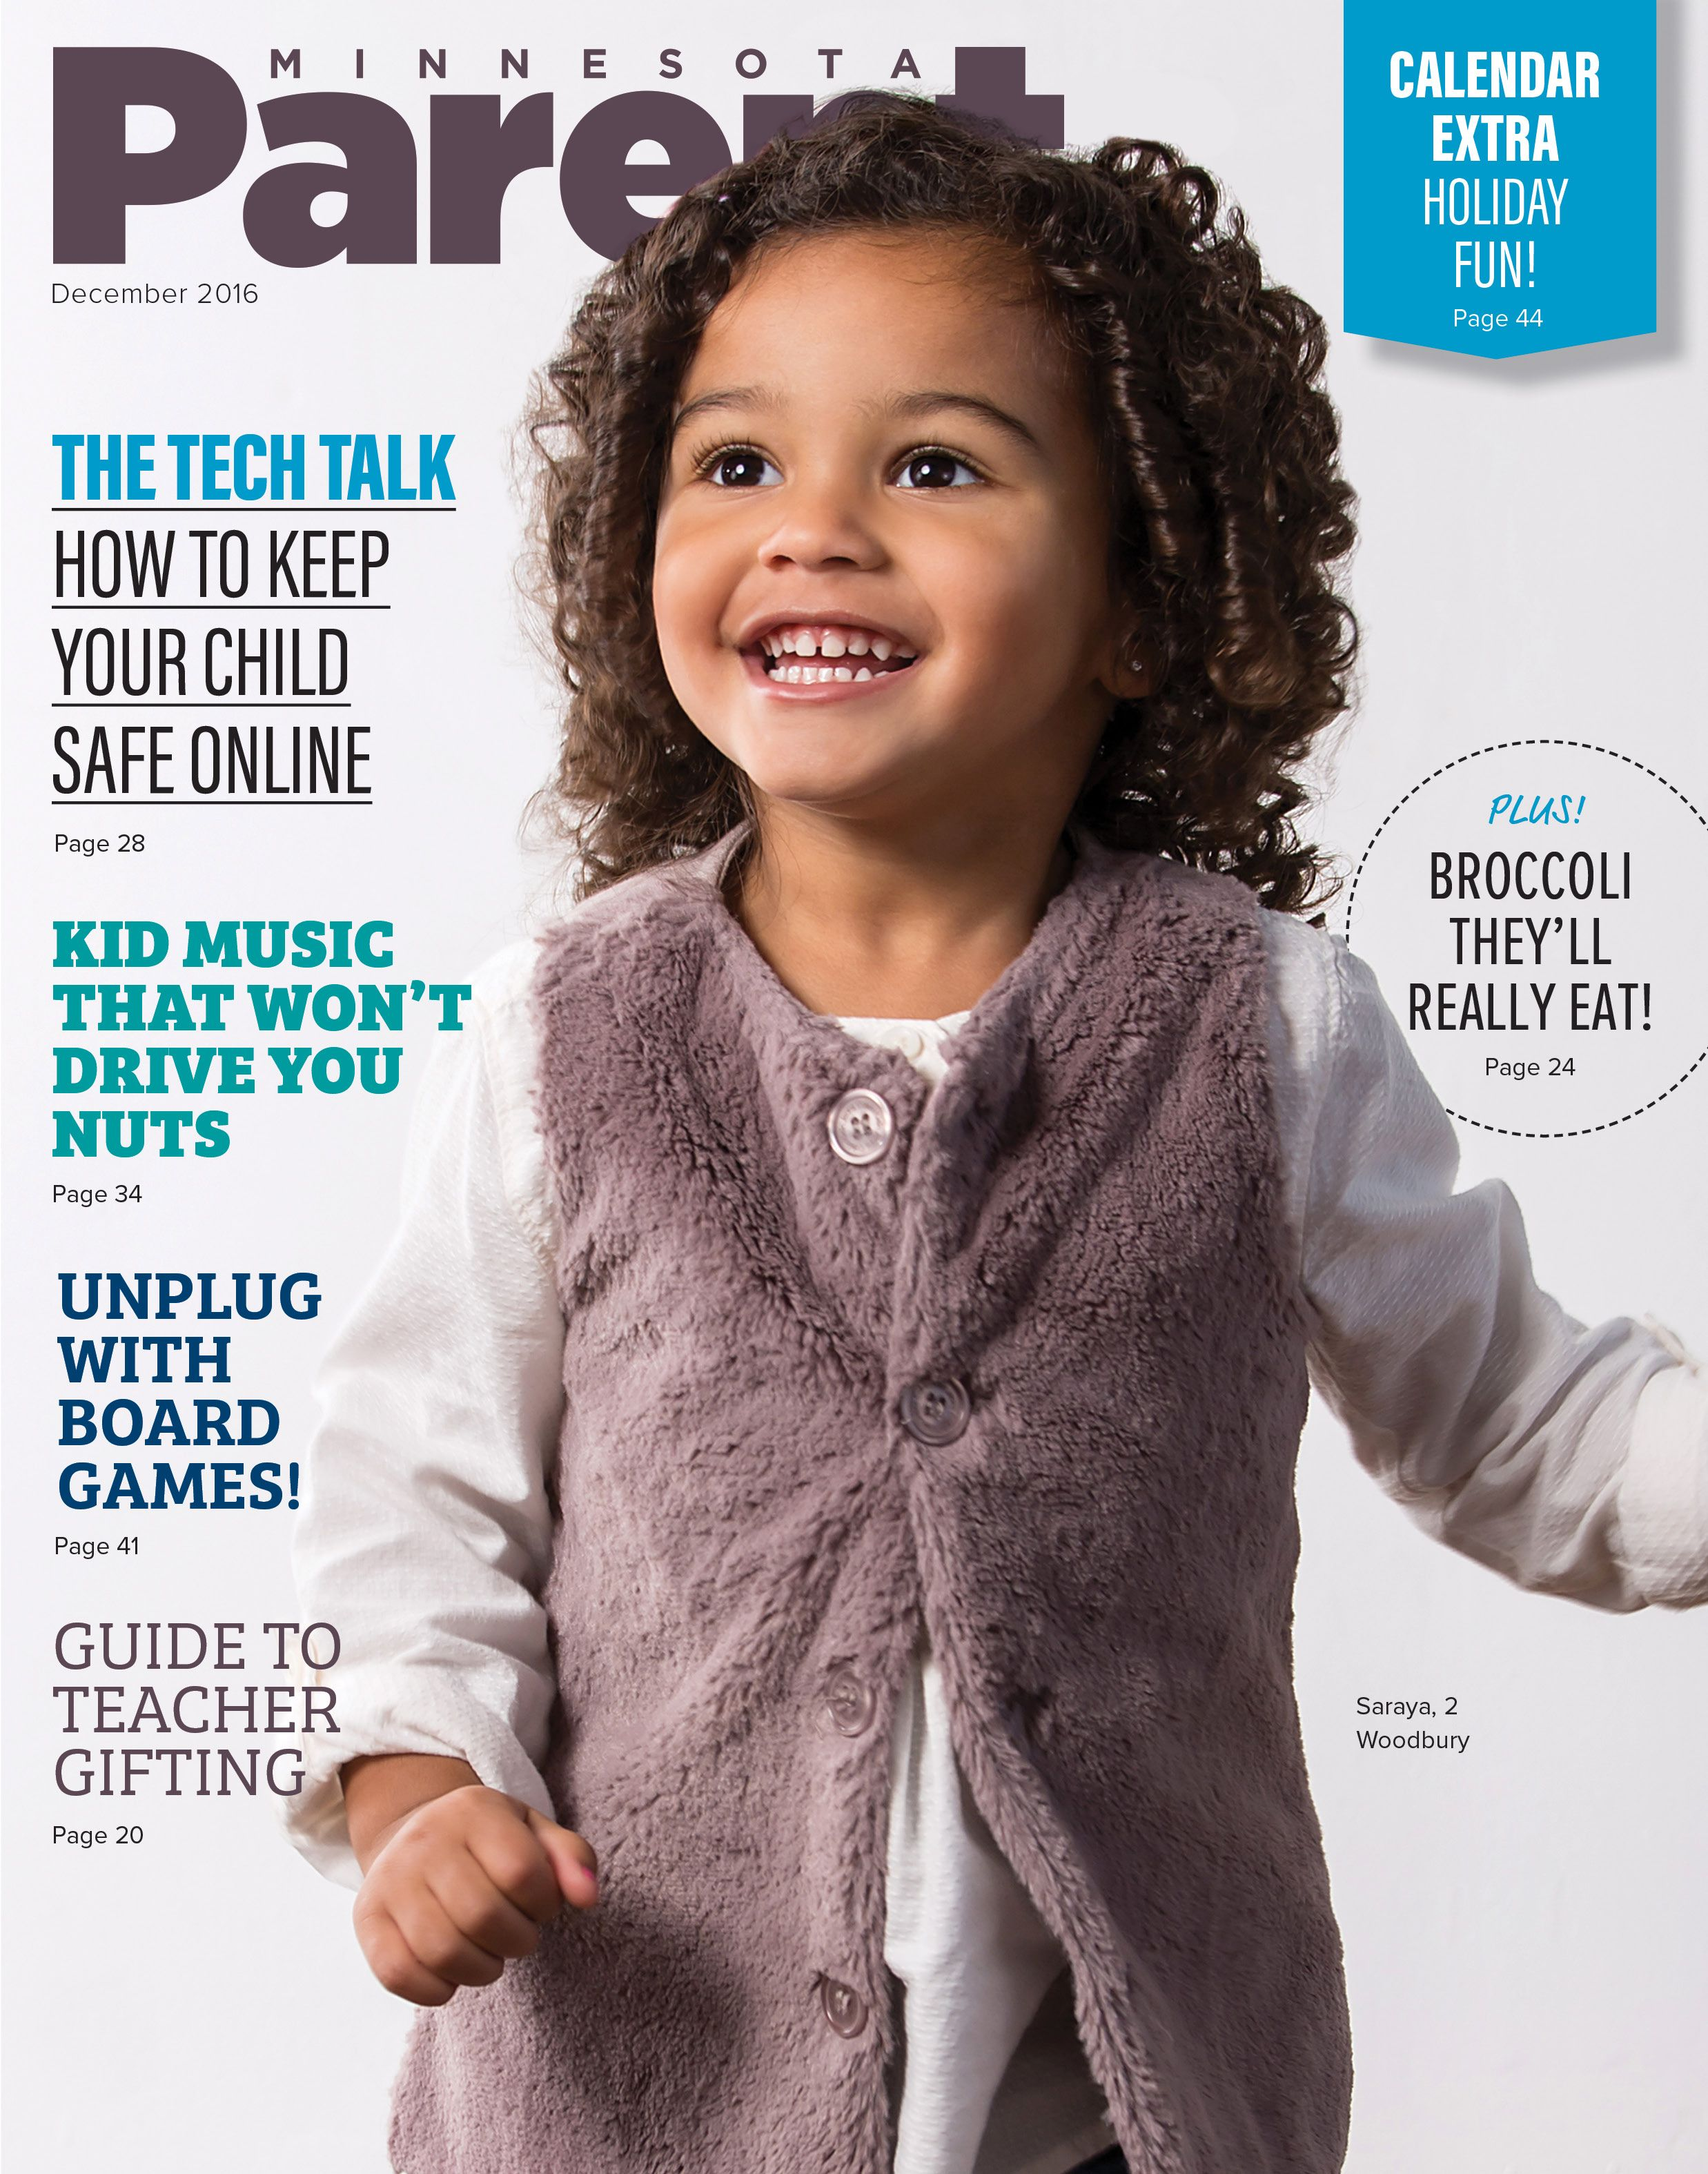 Check out our latest #adorable #coverkid, 2-year-old Saraya of Woodbury. Photo by Tracy Walsh Photography   Pick up a copy now at one of our 1,000 FREE news racks (mnparent.com/racks) or read us right now on Issuu (issuu.com/minnesotaparent).